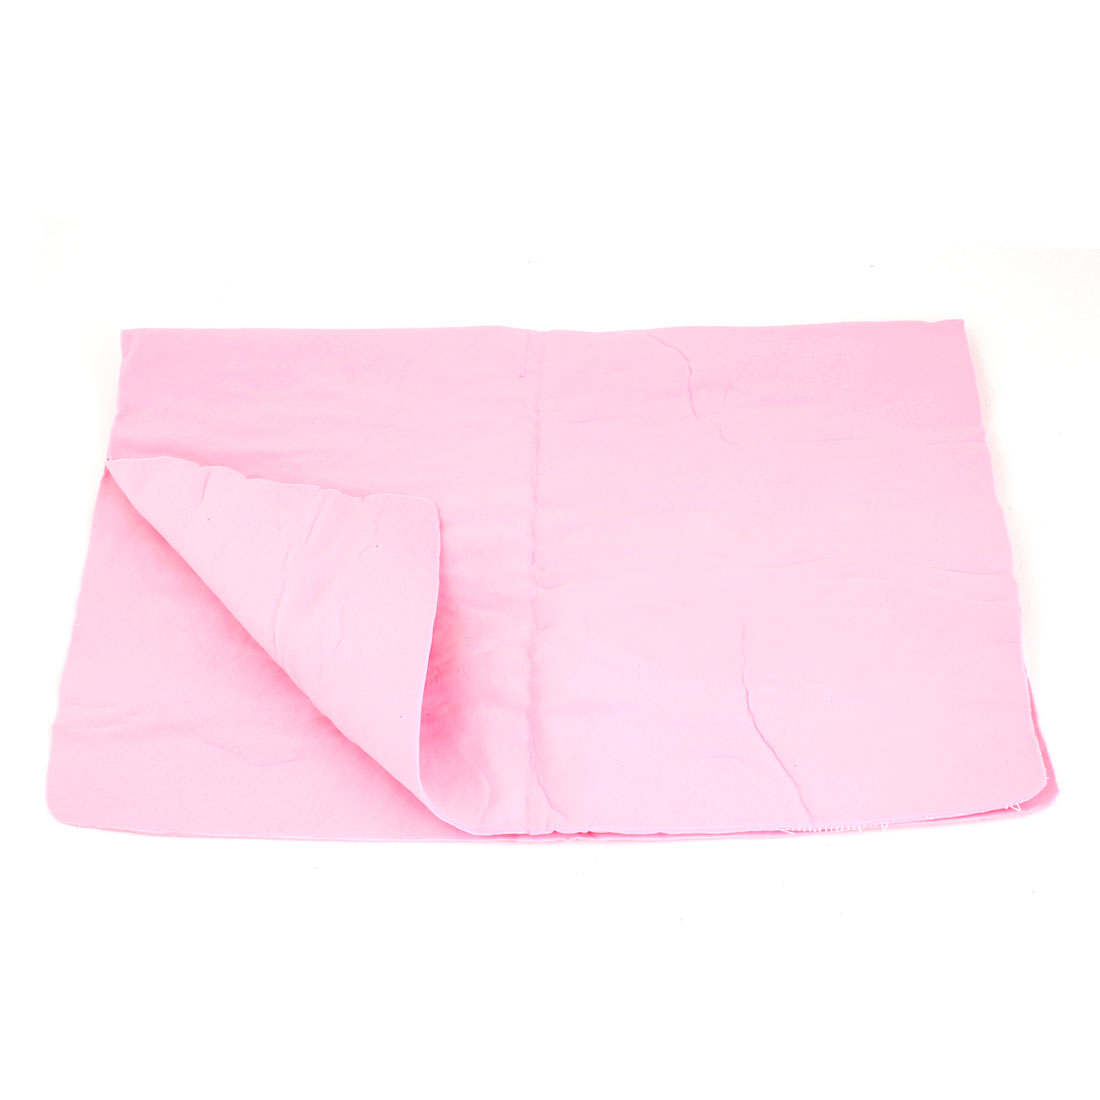 Pink Synthetic Chamois Cleaning Cham Towel 41cm x 32cm for Car Furniture